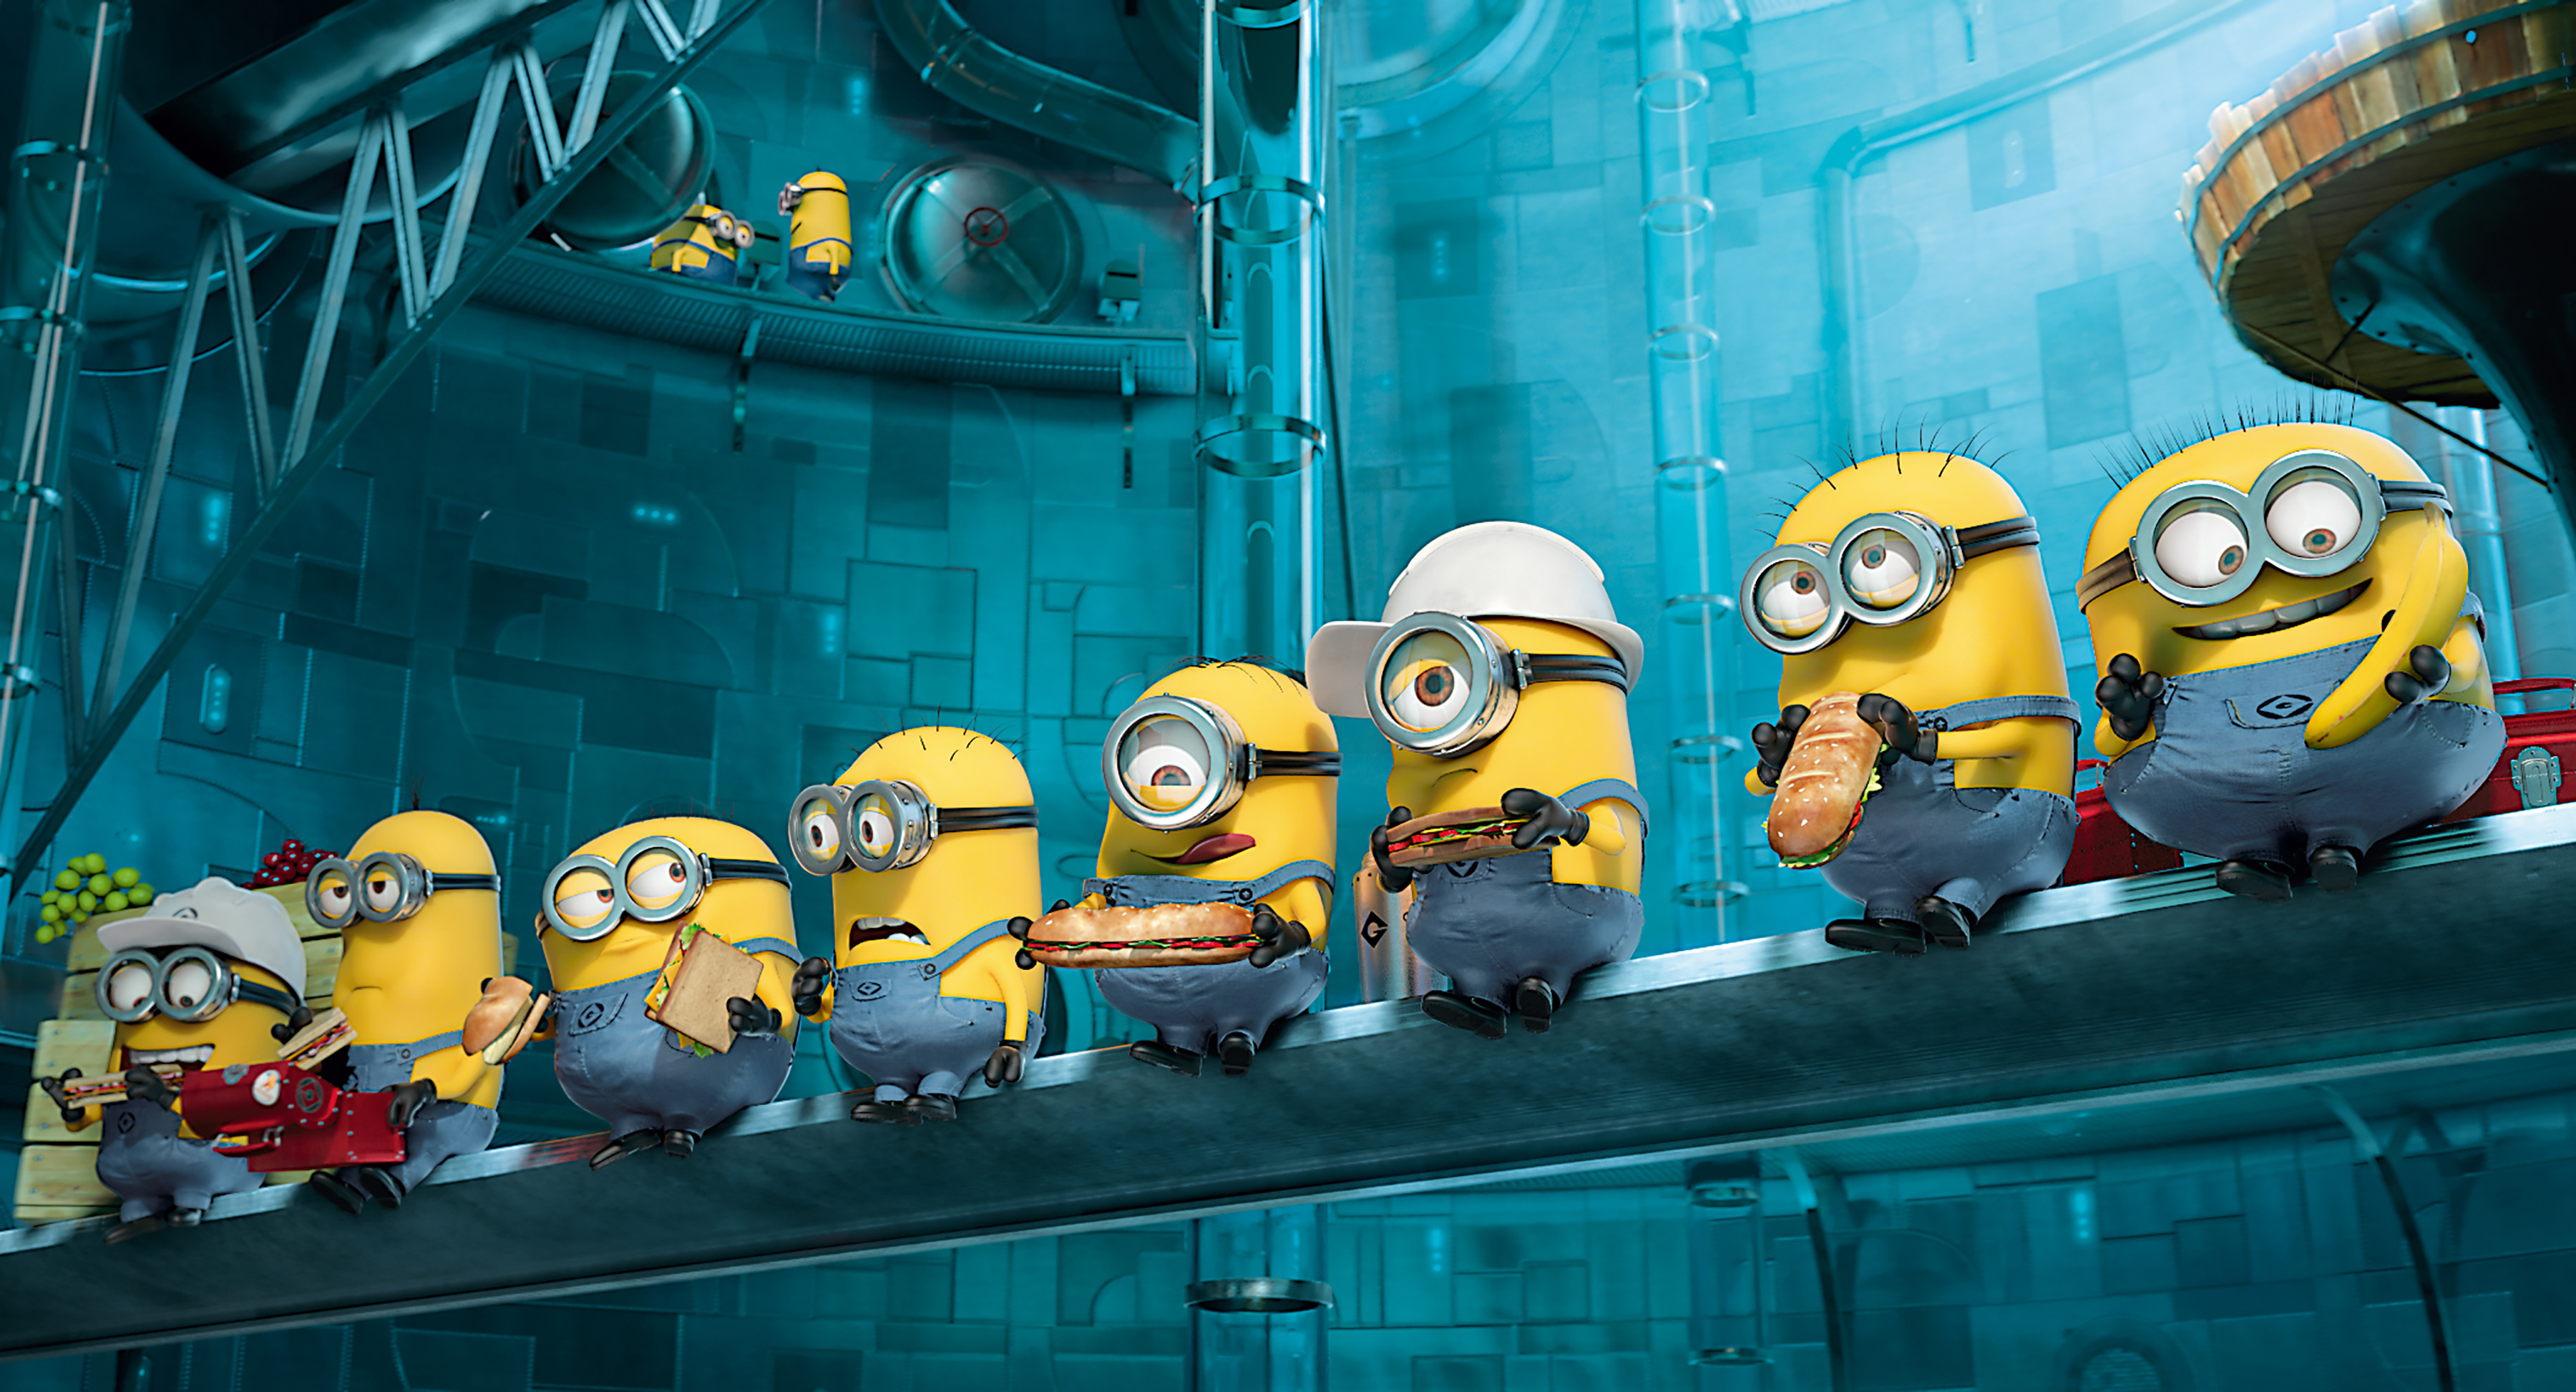 Despicable Me 2 Minions Pictures, Movie Wallpapers ...